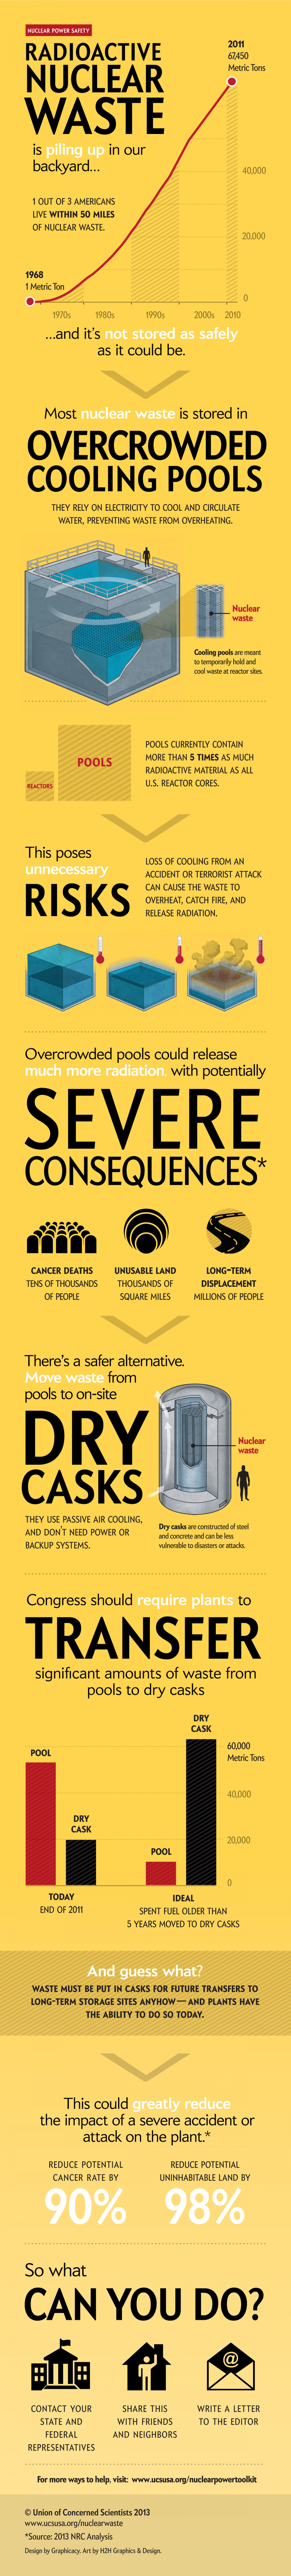 Nuclear Waste Is Piling Up Infographic